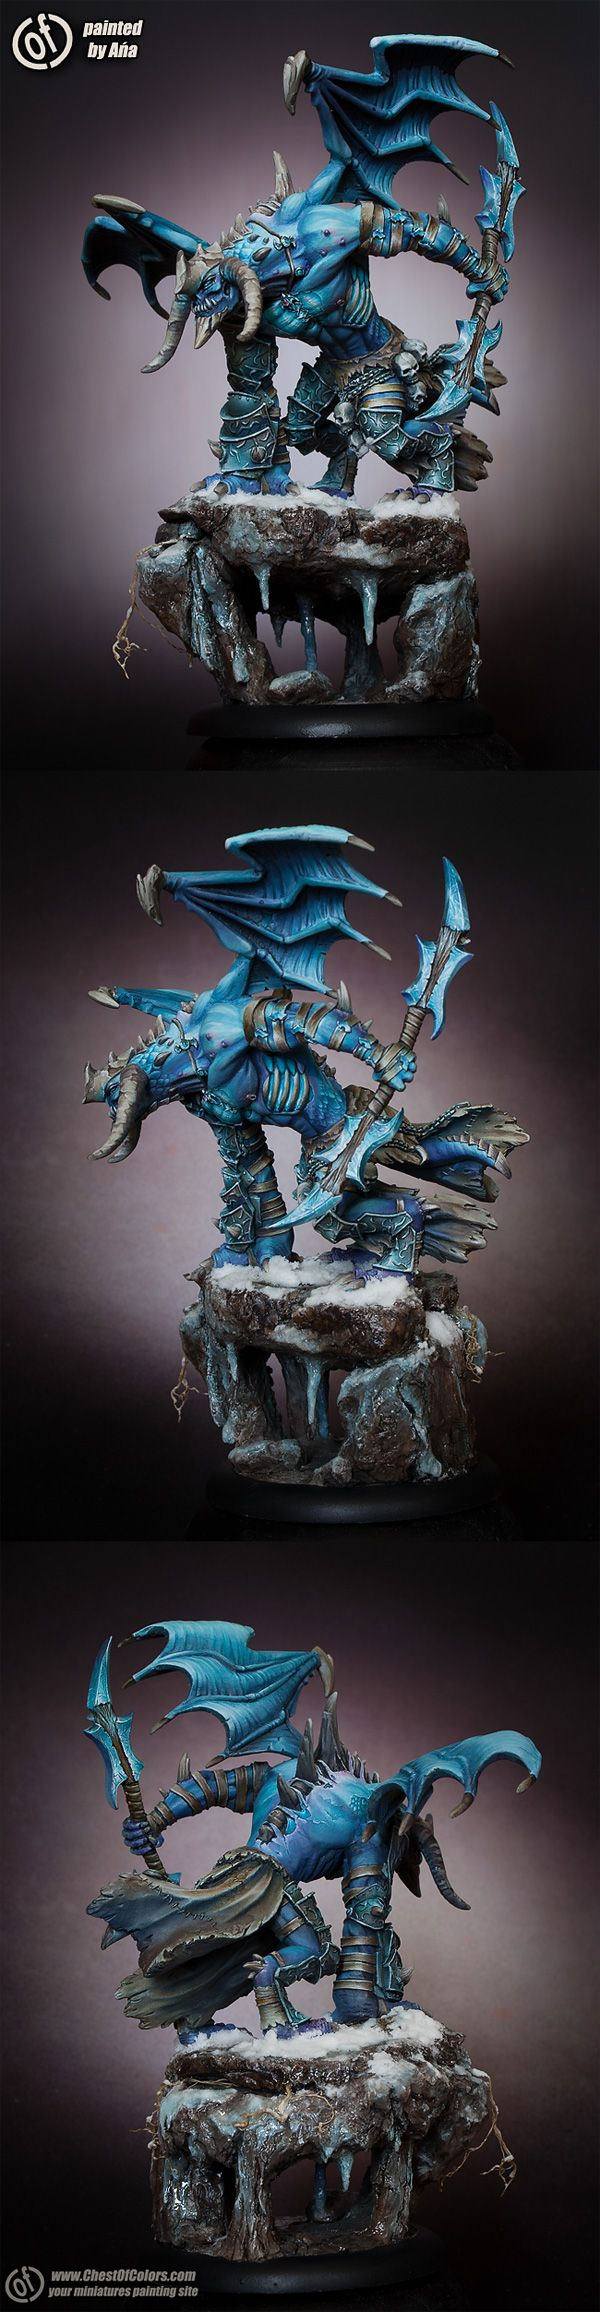 CoolMiniOrNot - Epic Thagrosh - the Messiah of Everblight by Ana